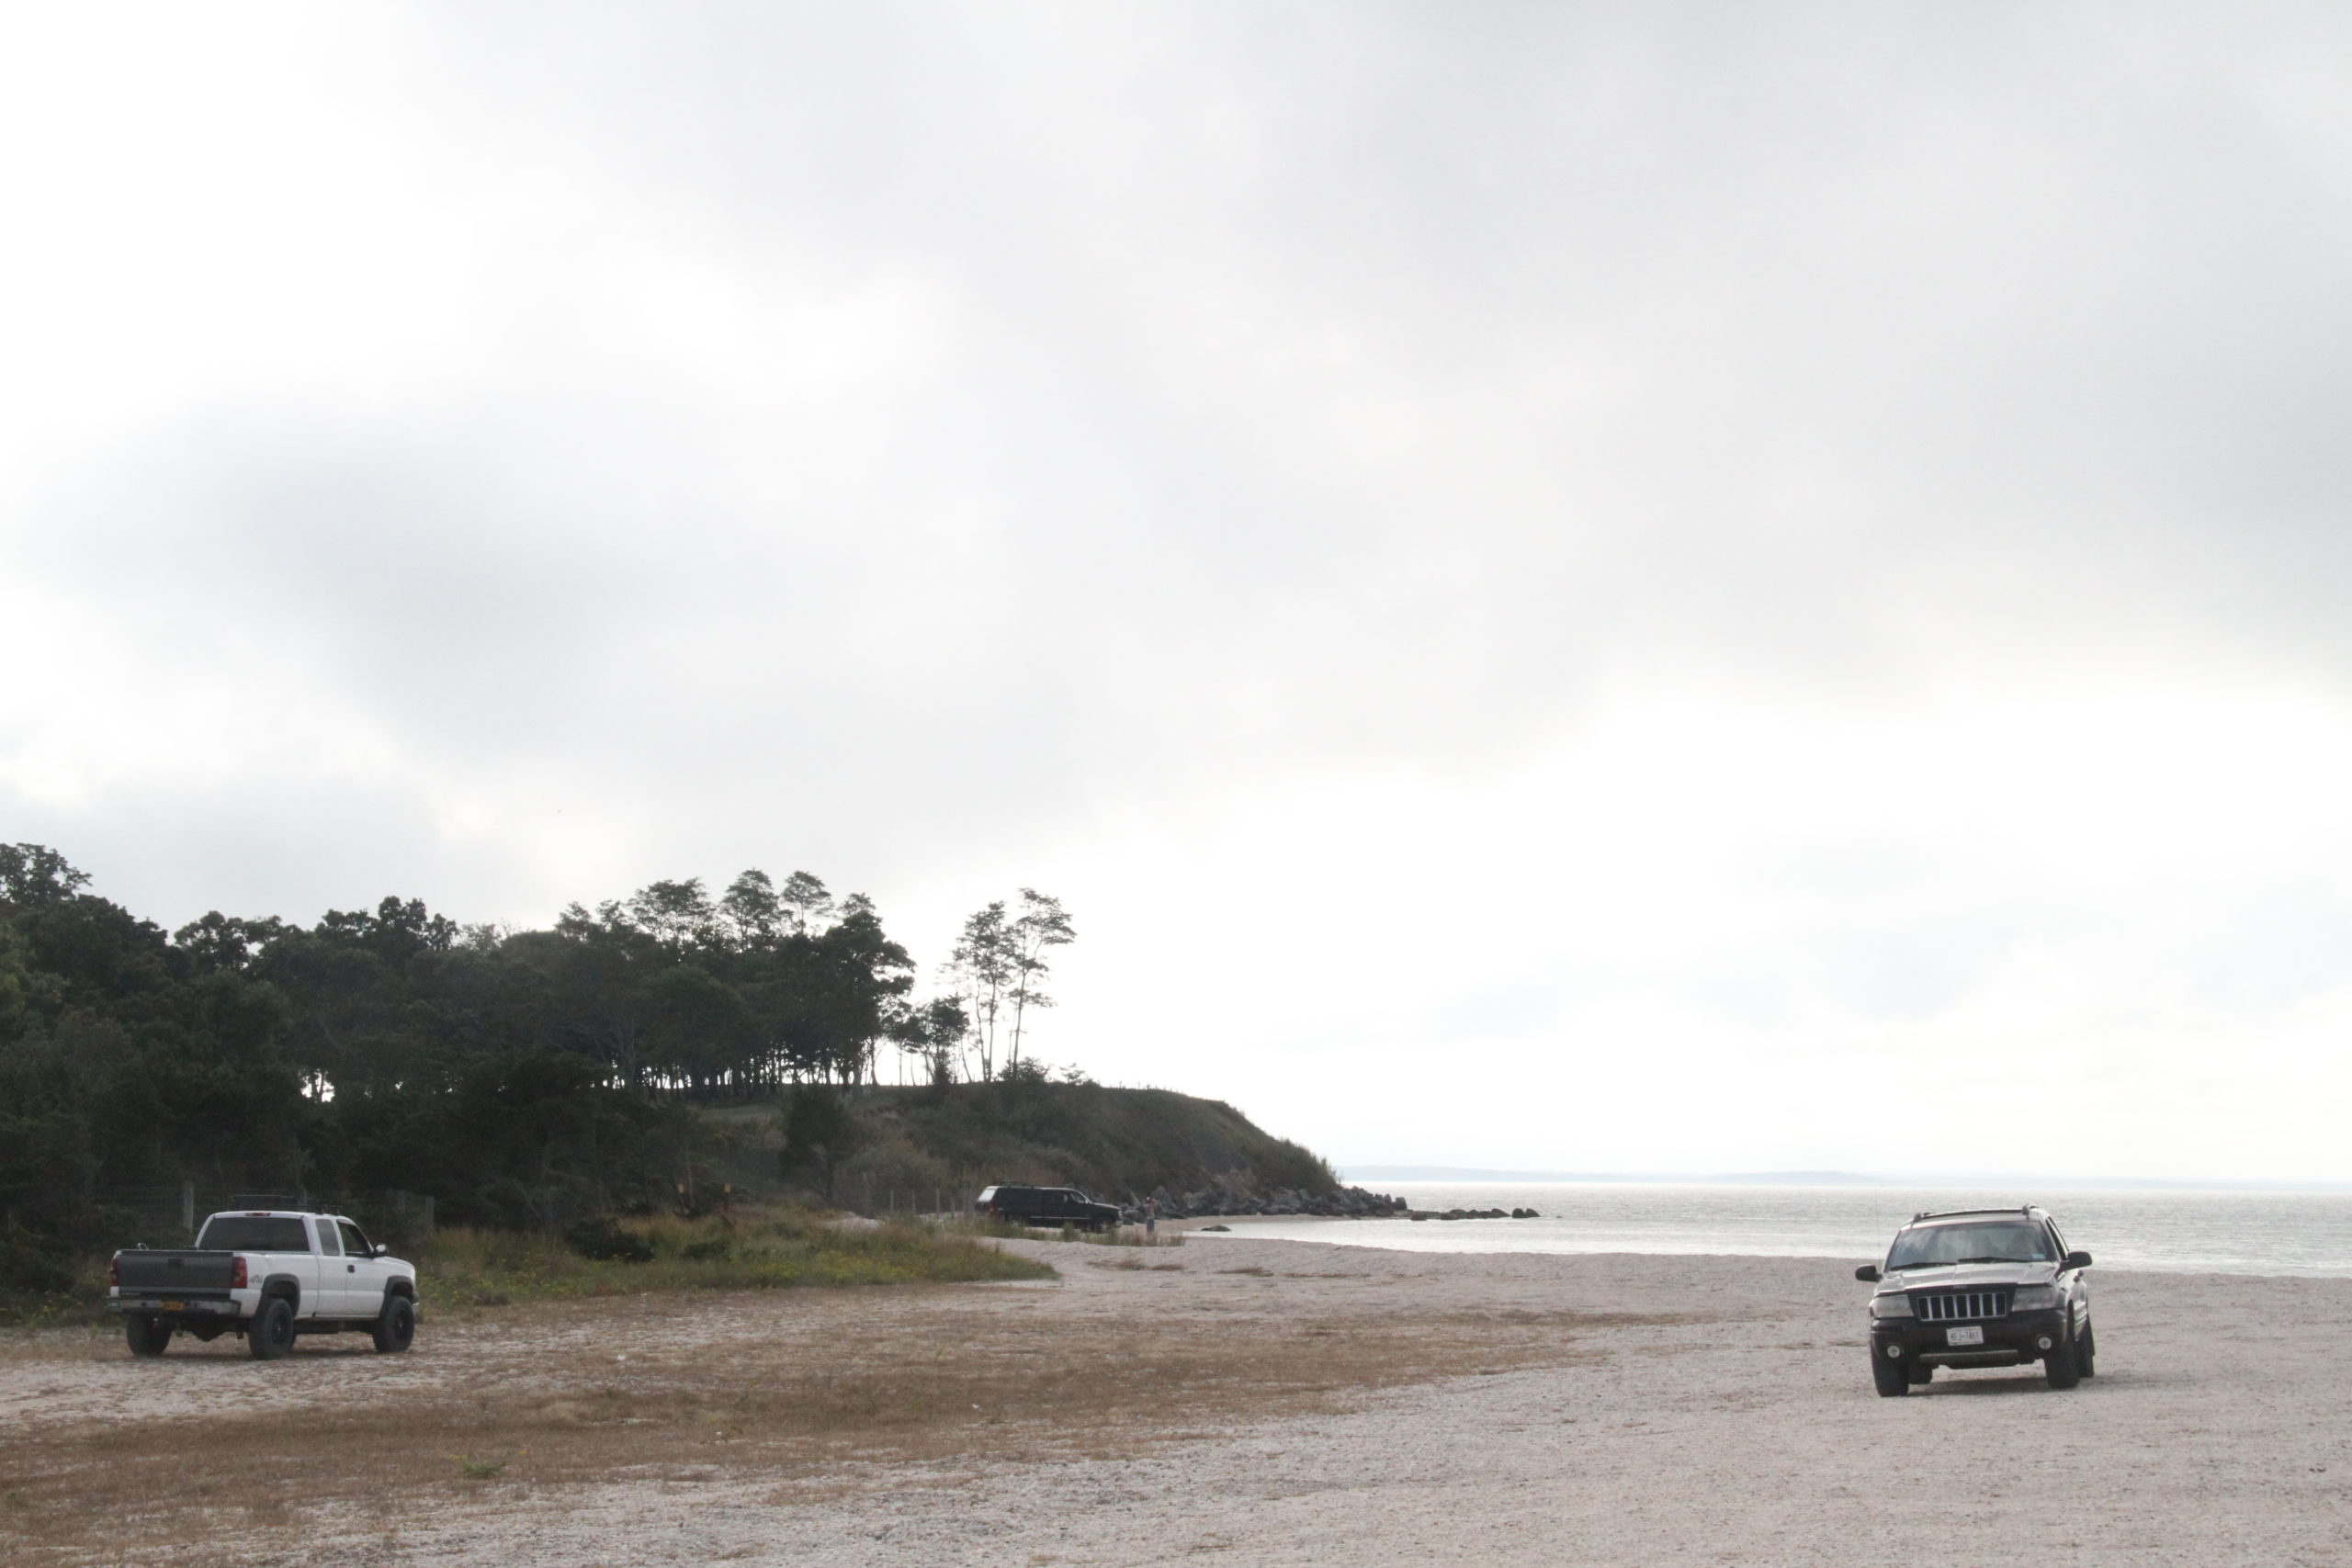 Vehicle traffic at the western end of North Sea Beach would be blocked if a proposal from the landowner is approved, which environmental analysts say would be beneficial to the ecology of the area.